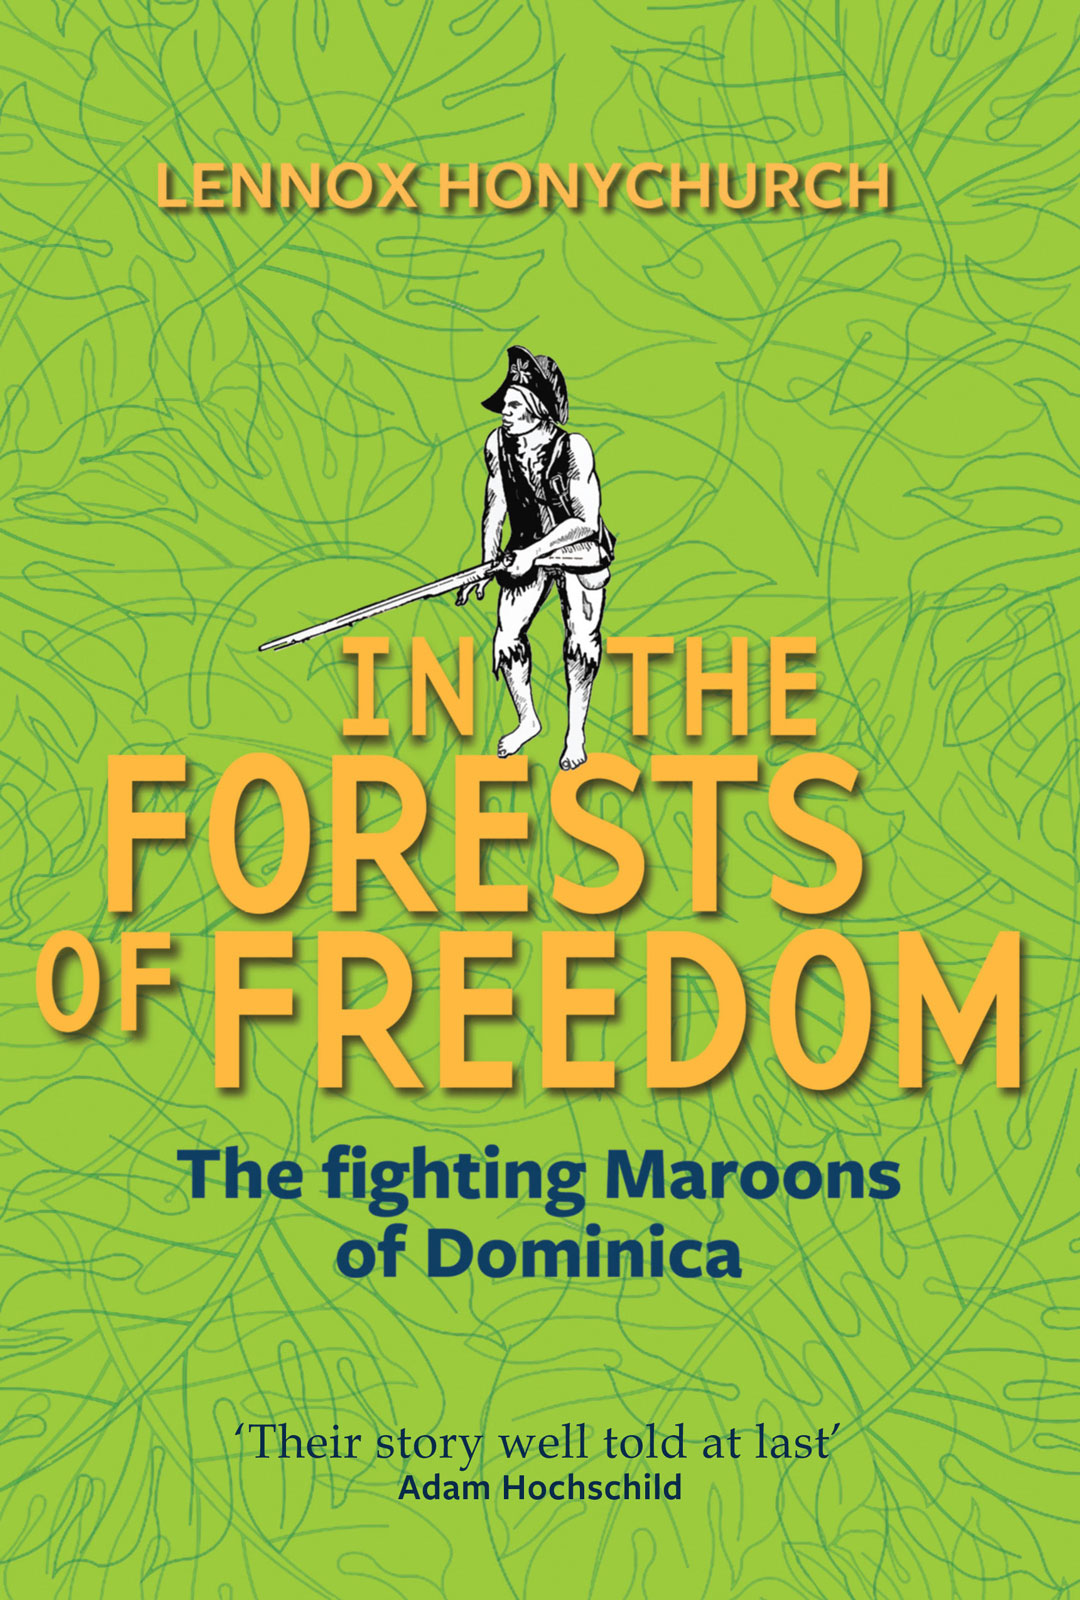 In the Forests of Freedom, the fighting Maroons of Dominica